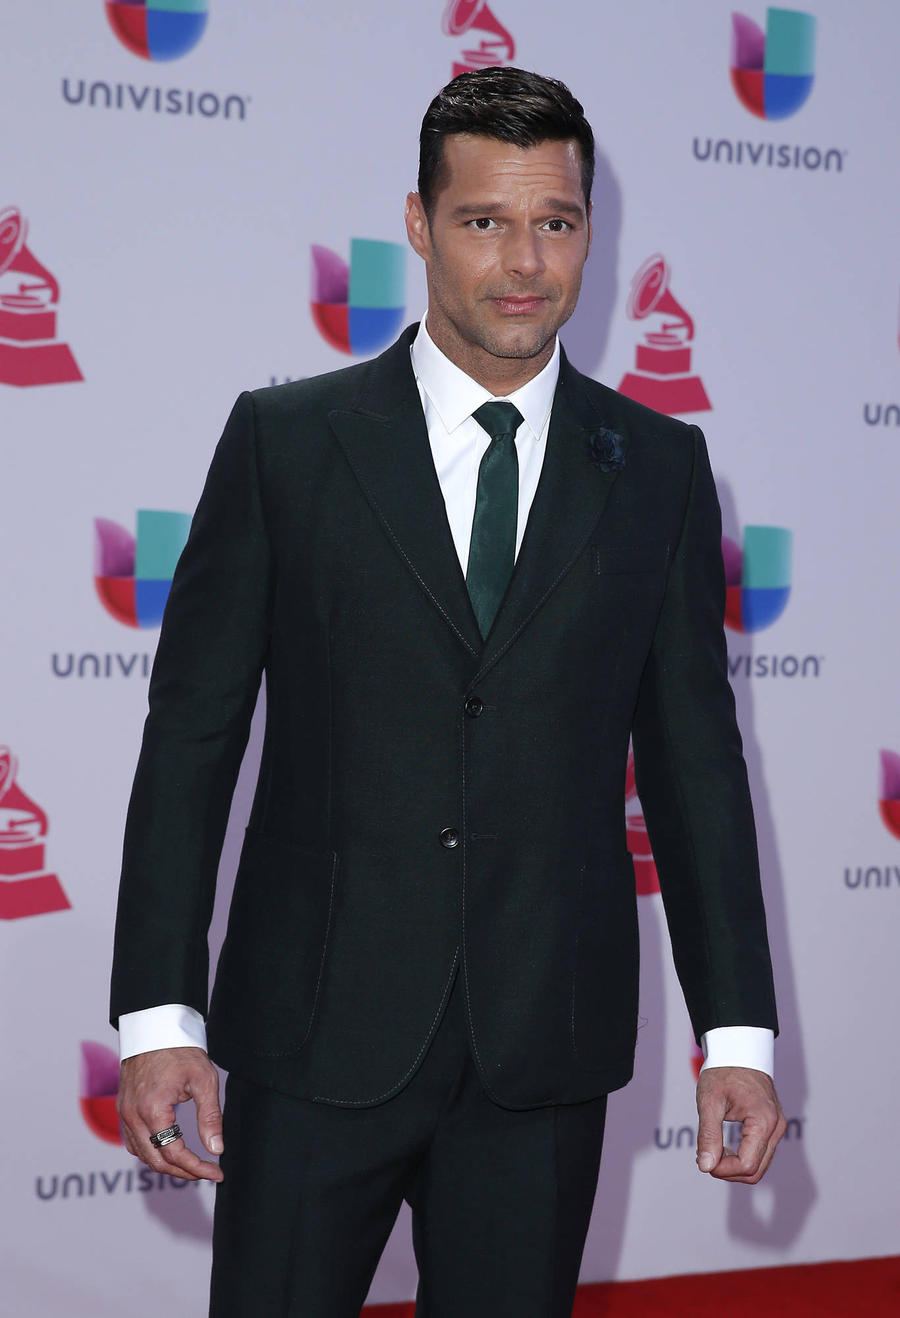 Ricky Martin And Juanes Praise Colombia's Gay Marriage Ruling